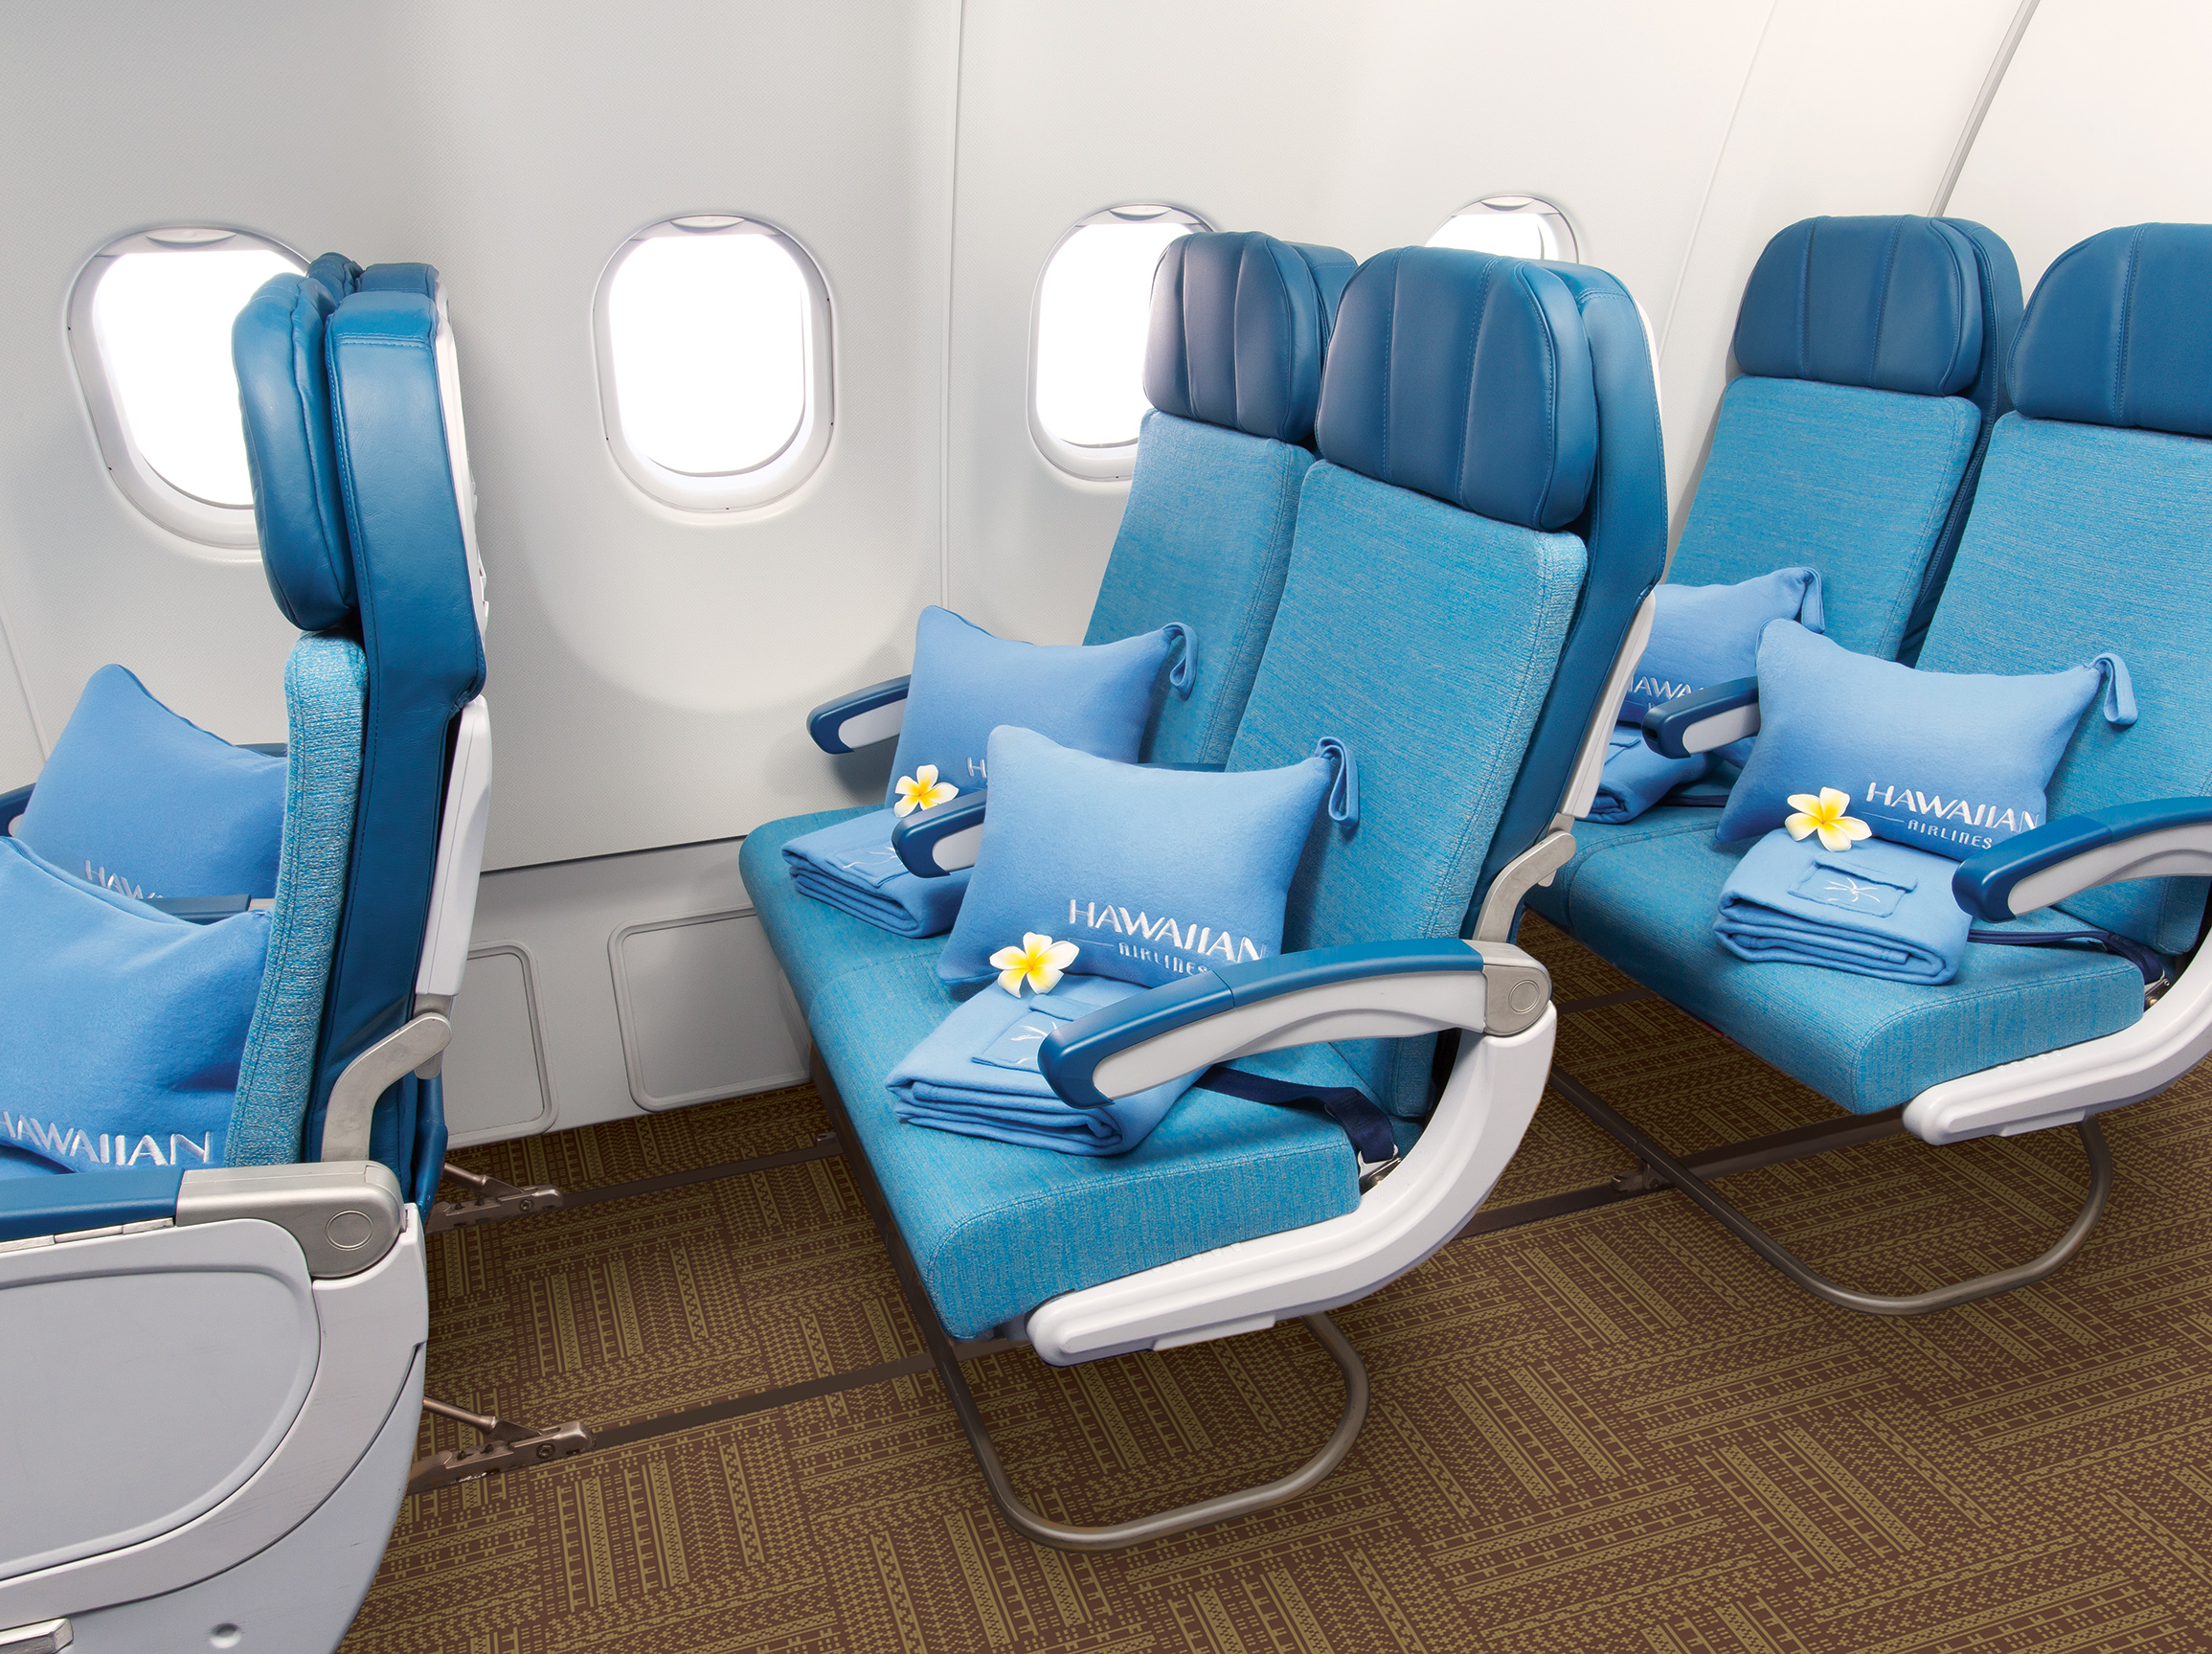 Hawaiian Airlines Announce Extra Comfort Economy Seating ...